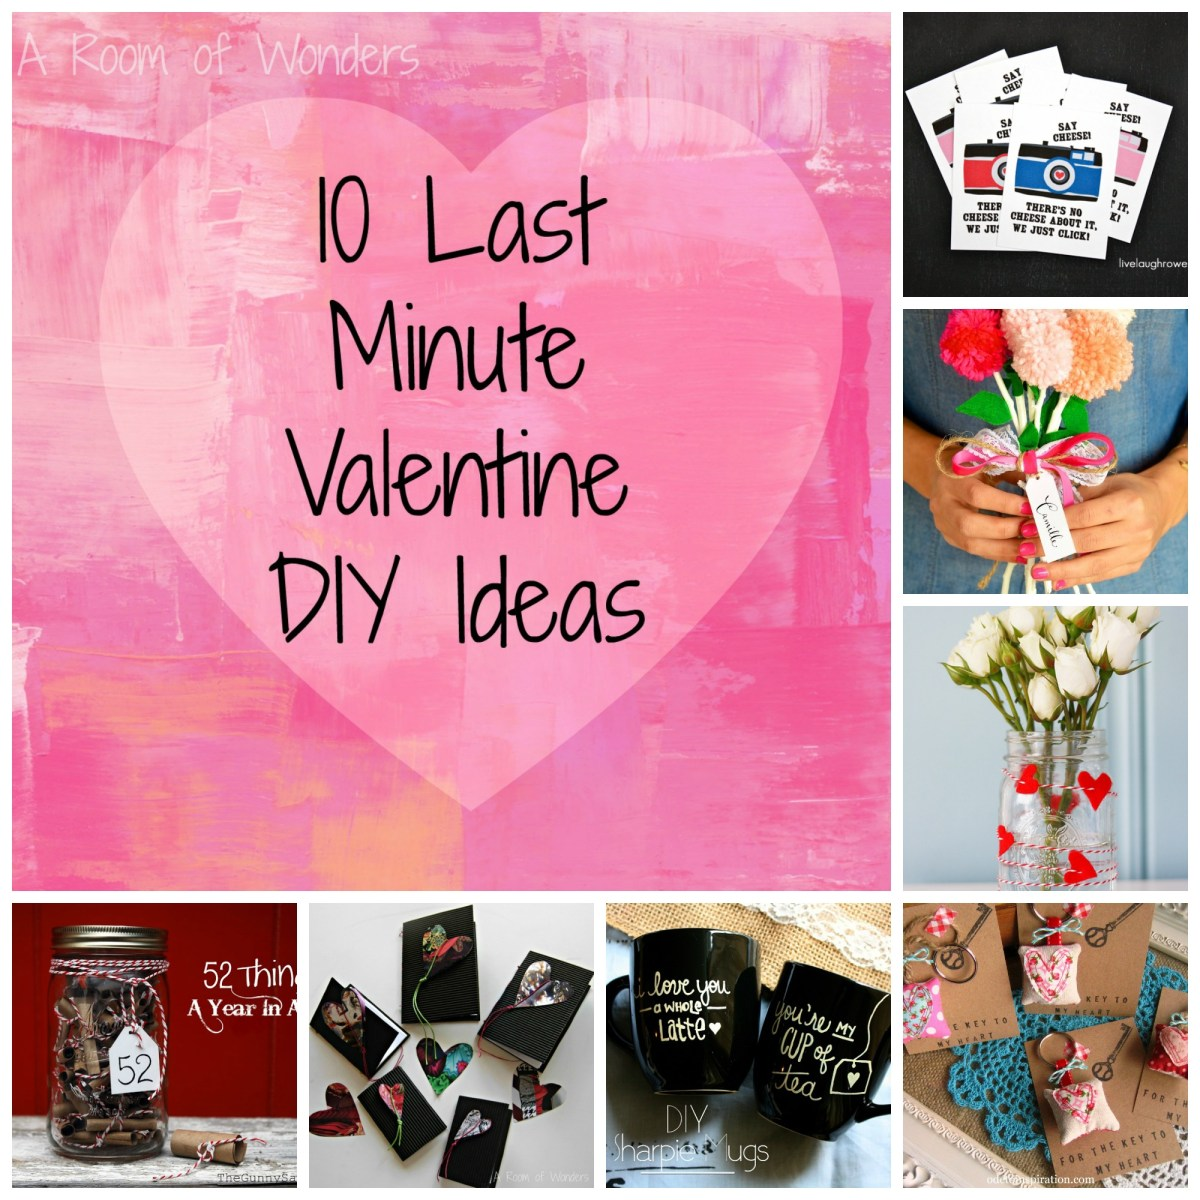 Projects I Like 10 Last Minute Valentine Diy Ideas A